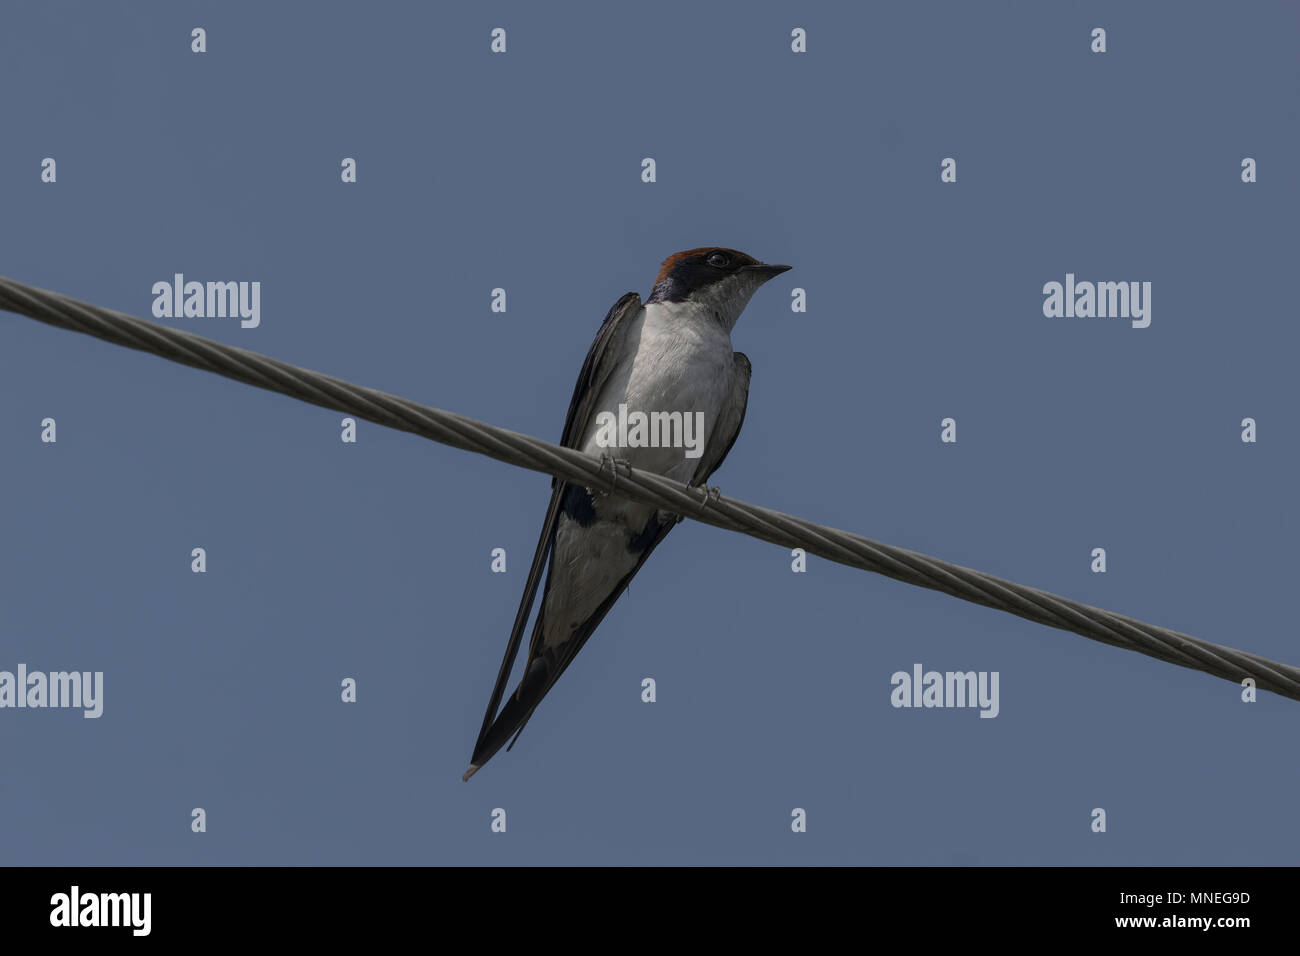 The swallows and martins, or Hirundinidae, are a family of passerine birds. - Stock Image